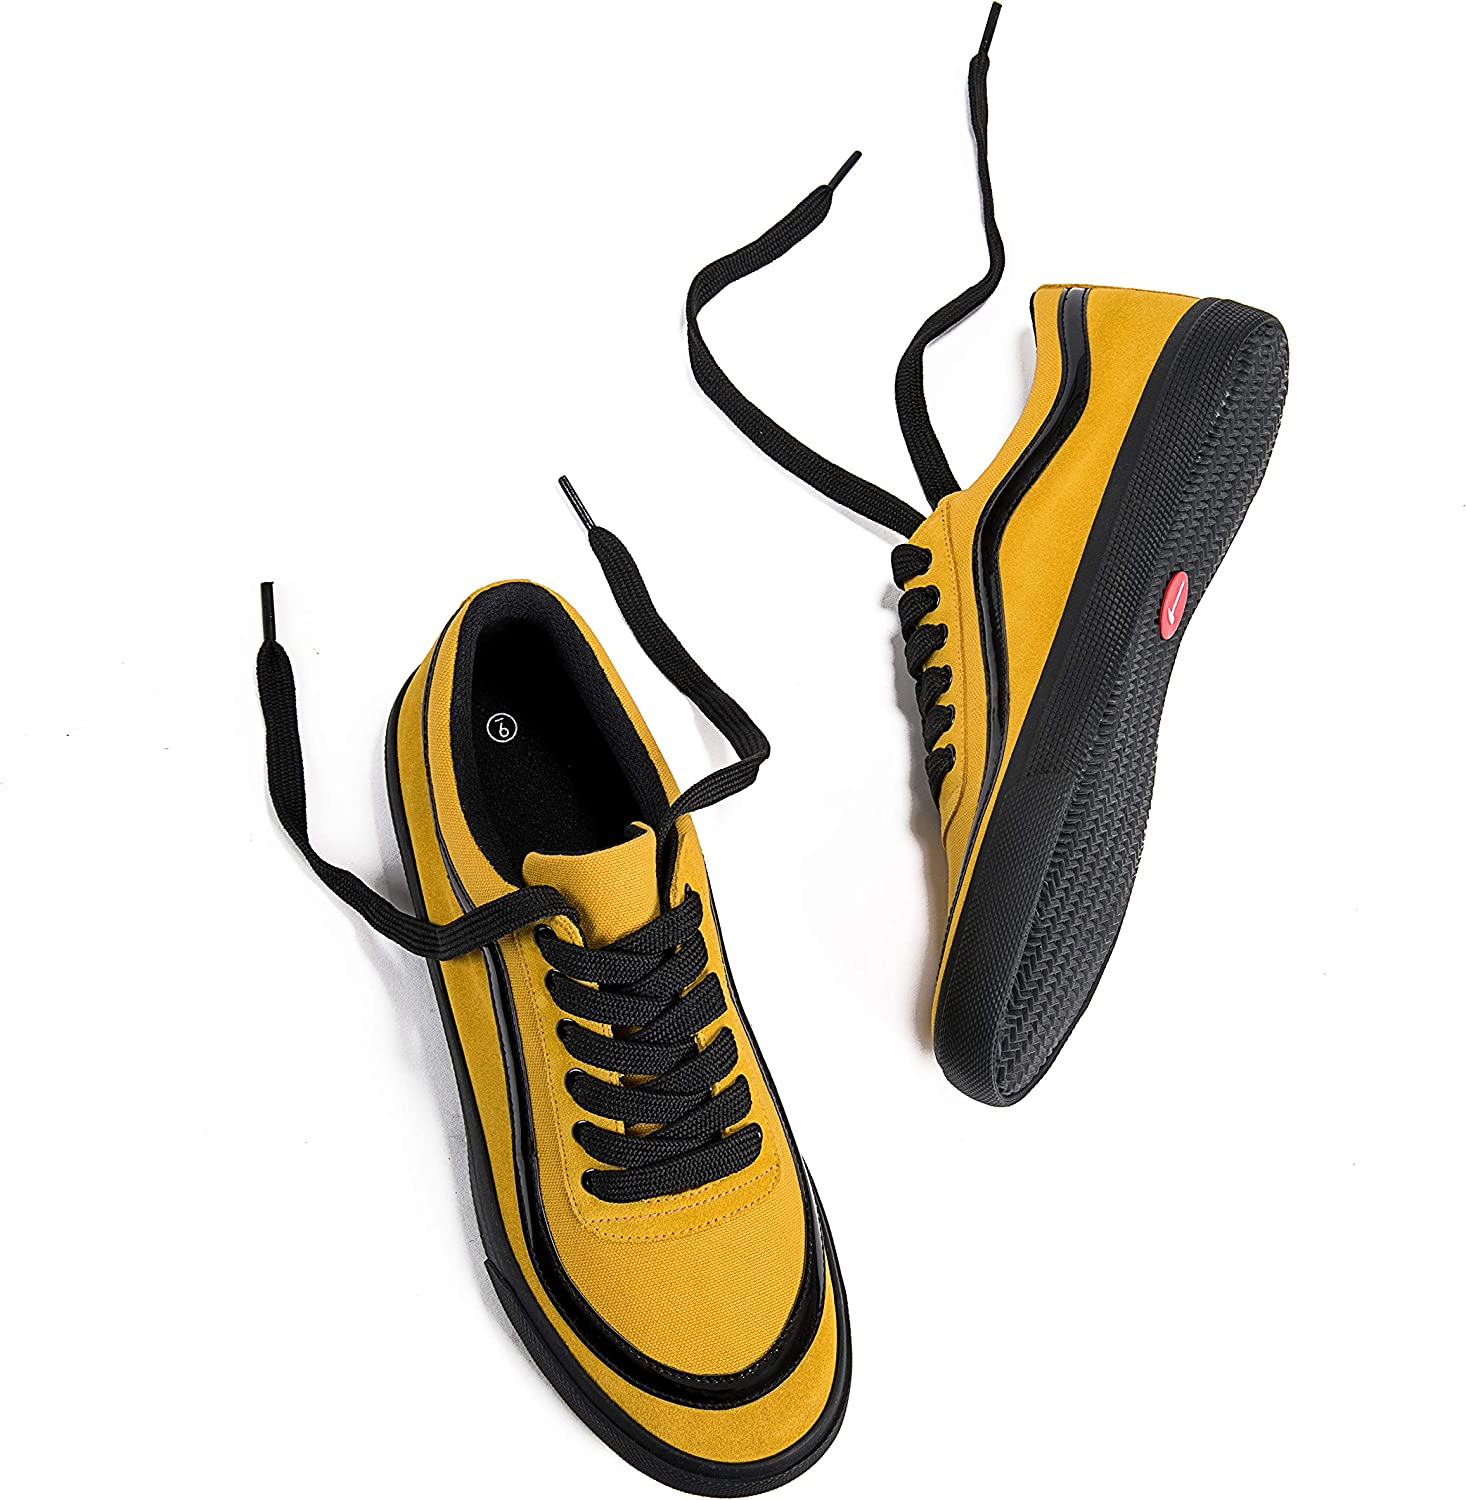 DOUBLESTAR MR Bruce Lee Commemorative Edition Stylish Slip On Lightweight Kung Fu Parkour Martial Arts UFC MMA Skateboard Oxford Training Shoes Pure Action Sport Casual Minimalist Athletic Sneaker